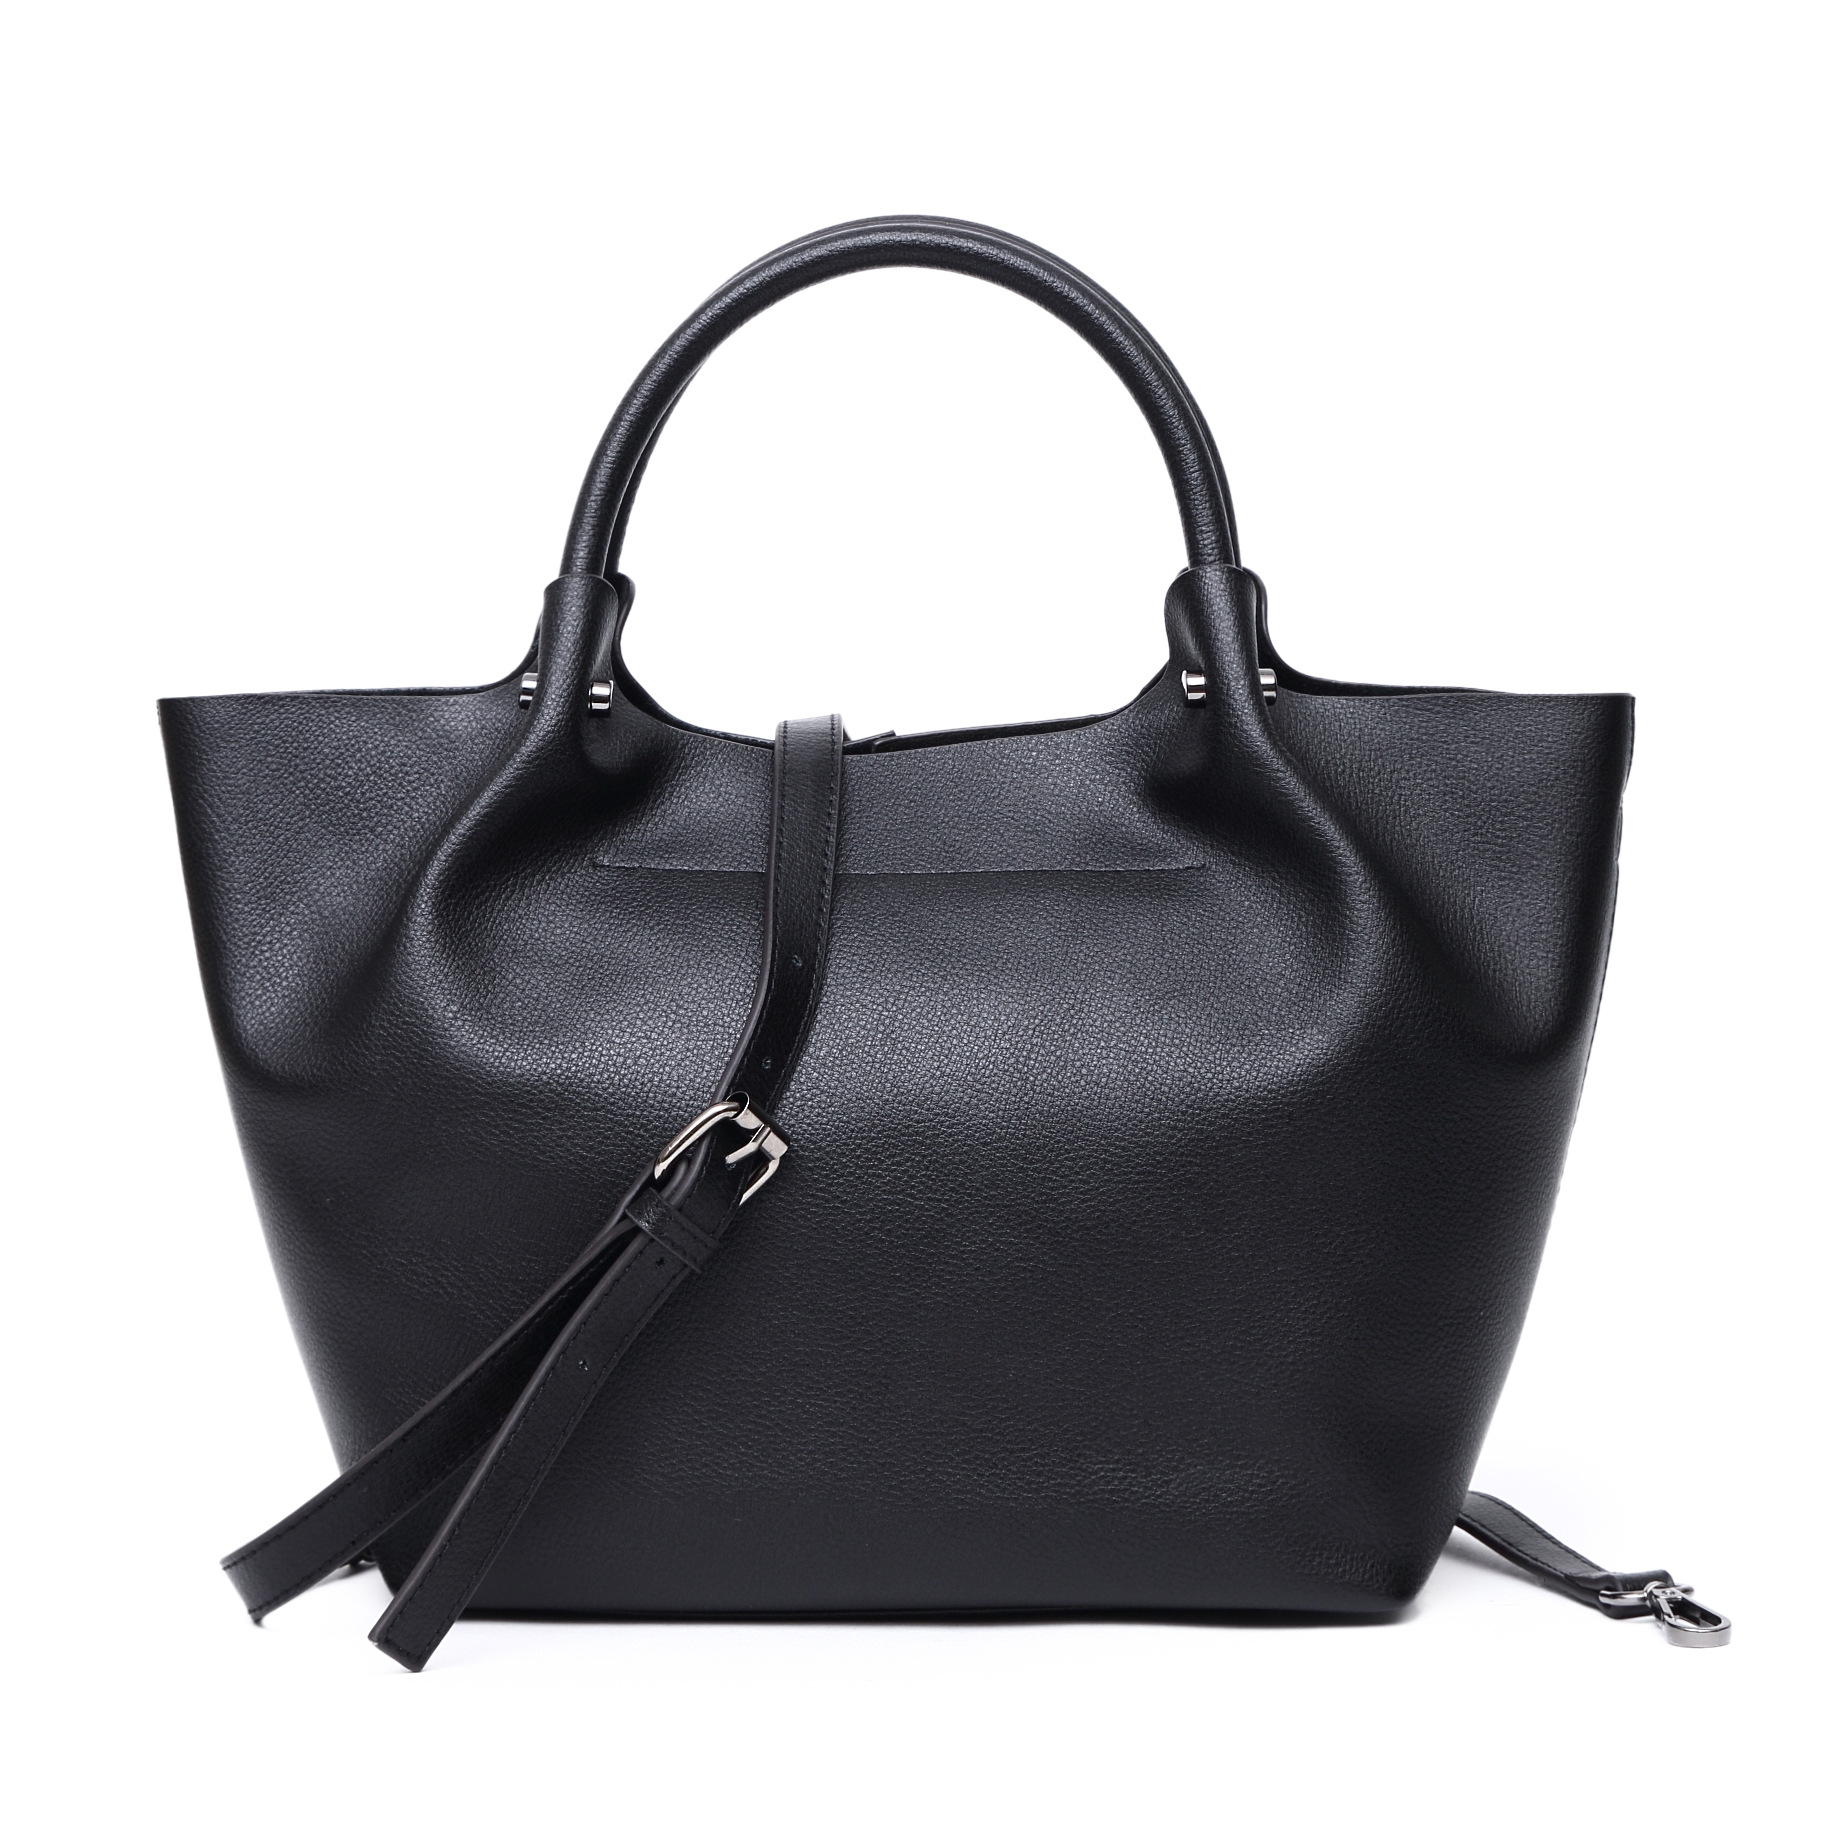 2017 Autumn Winter Women Tote Bags Large Capacity 100% Genuine Cow Soft Leather Lades Handbag Classical Hobo Shopper Bag new women hobo bags soft pu leather women s handbag large ladies shoulder bag for middle aged female shopper travel bags